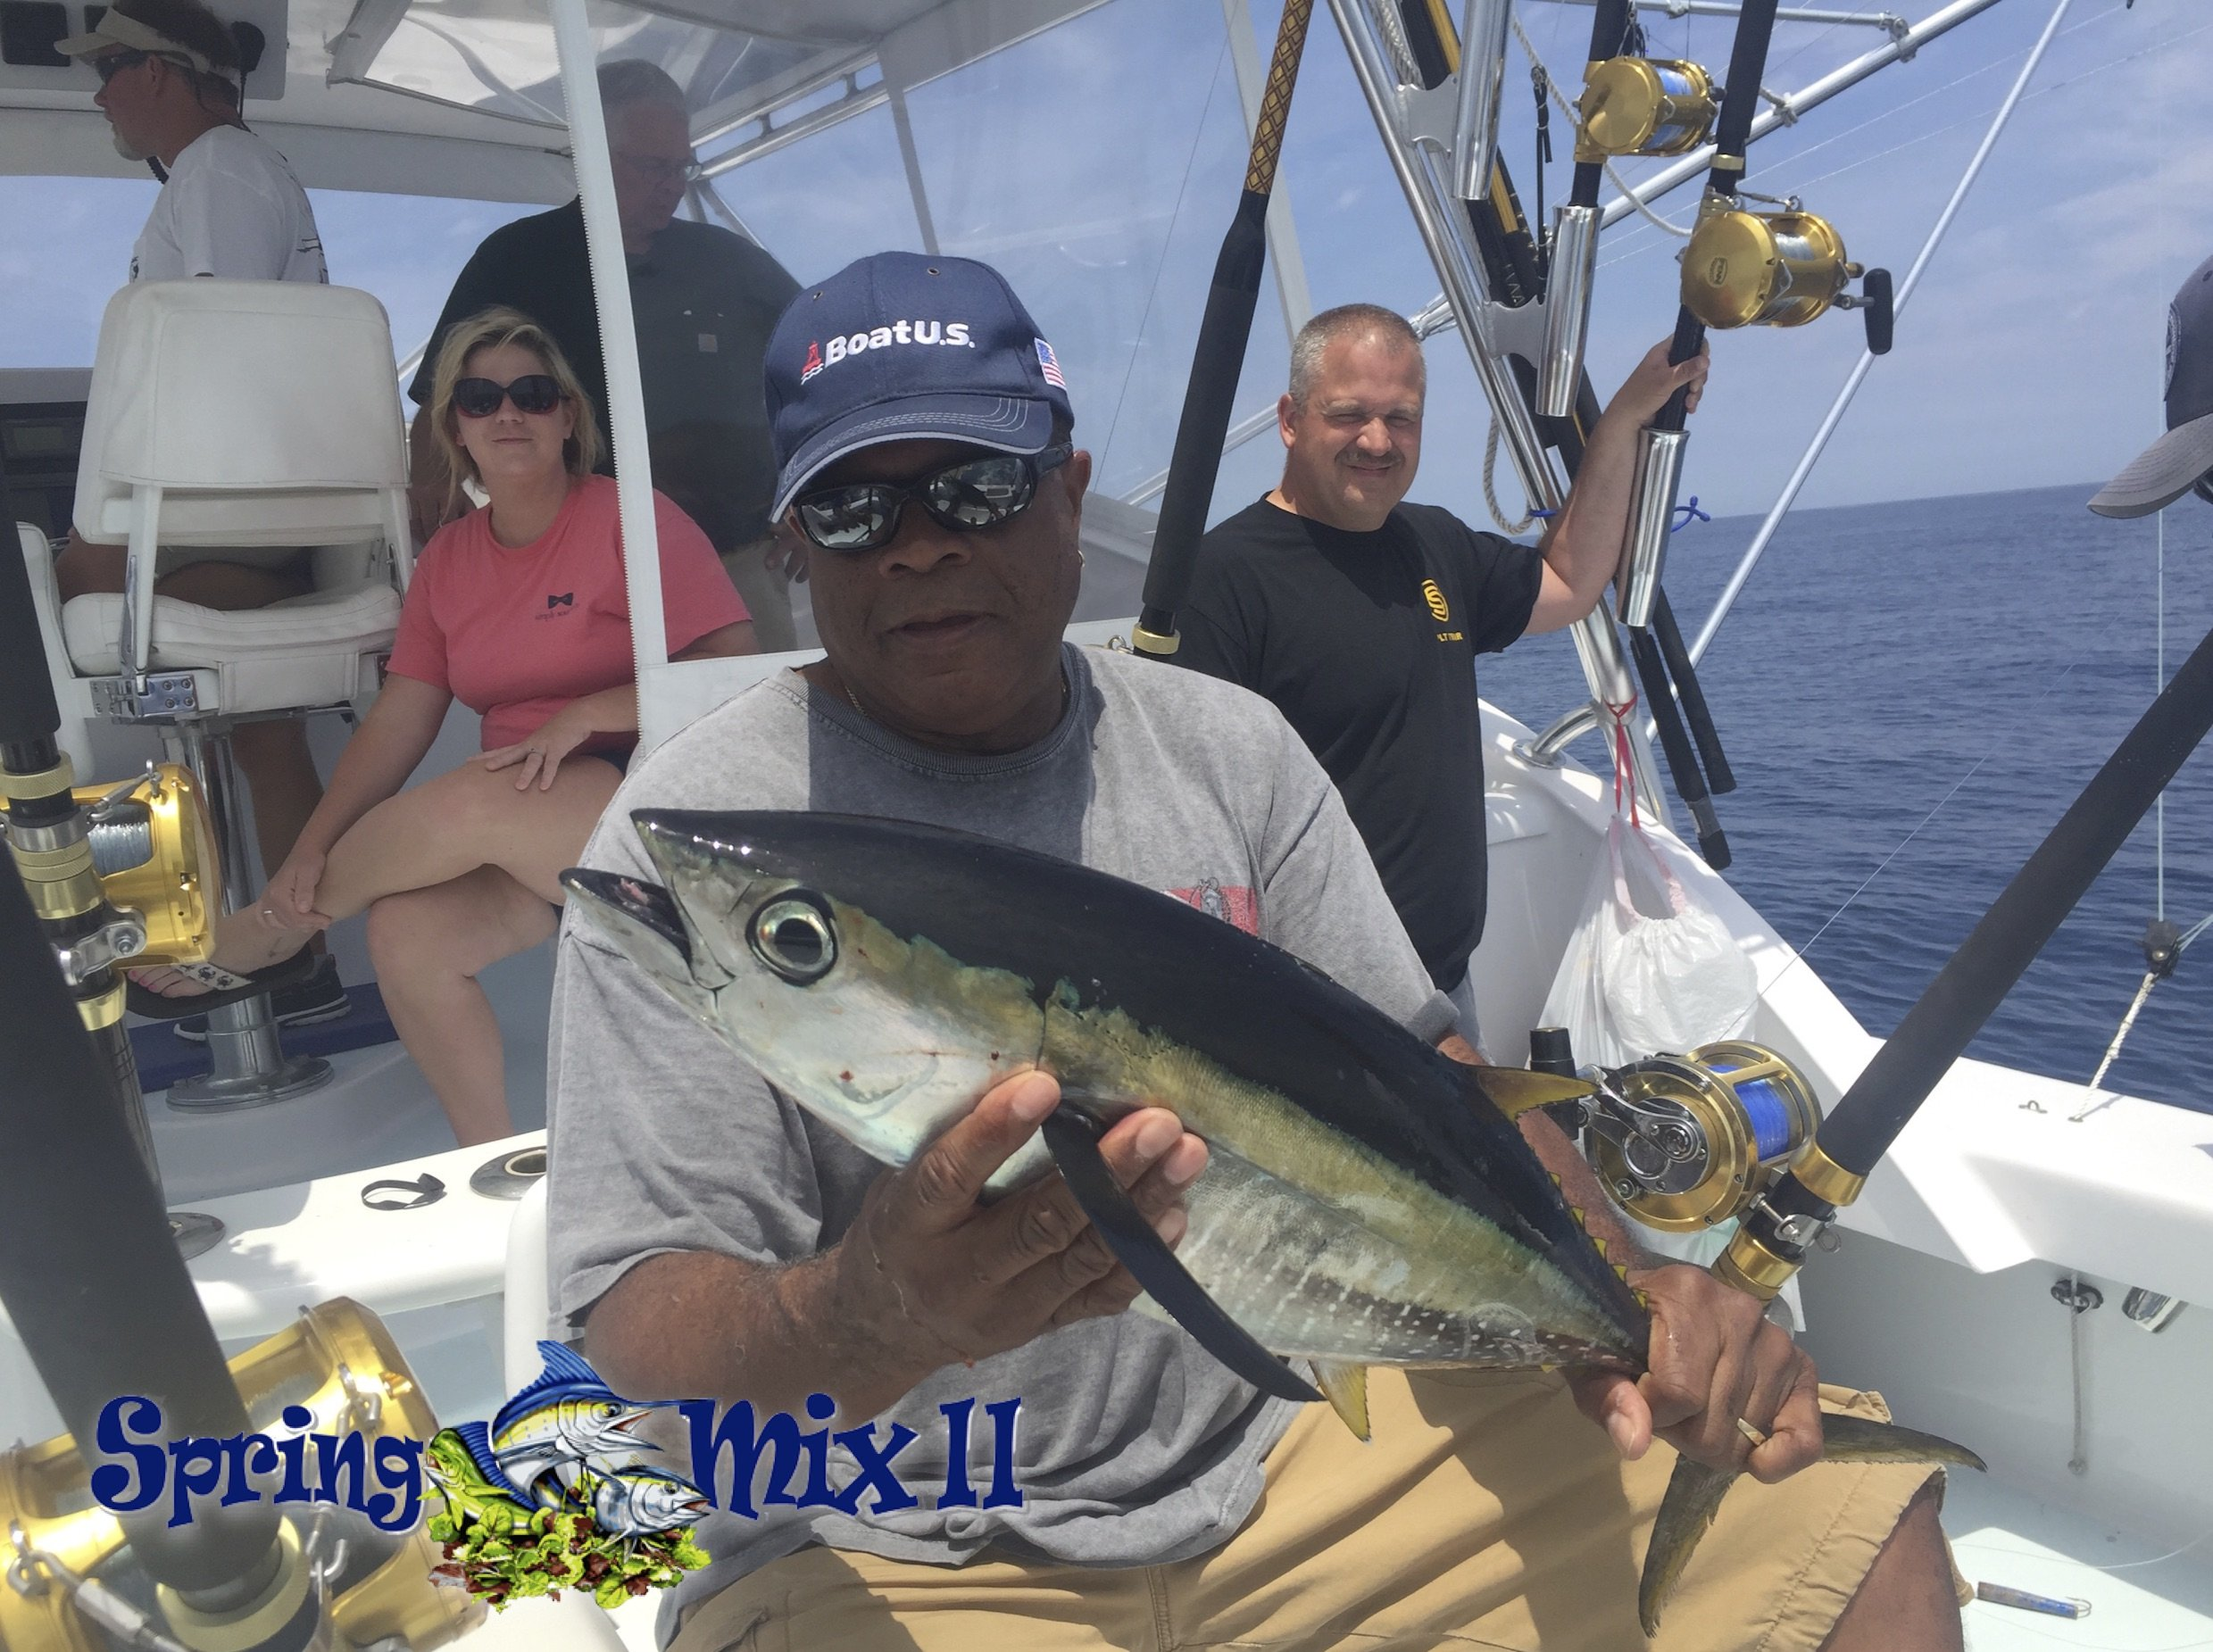 Fish in oc trade show schedule offshore fishing trip for Free fishing tackle giveaway